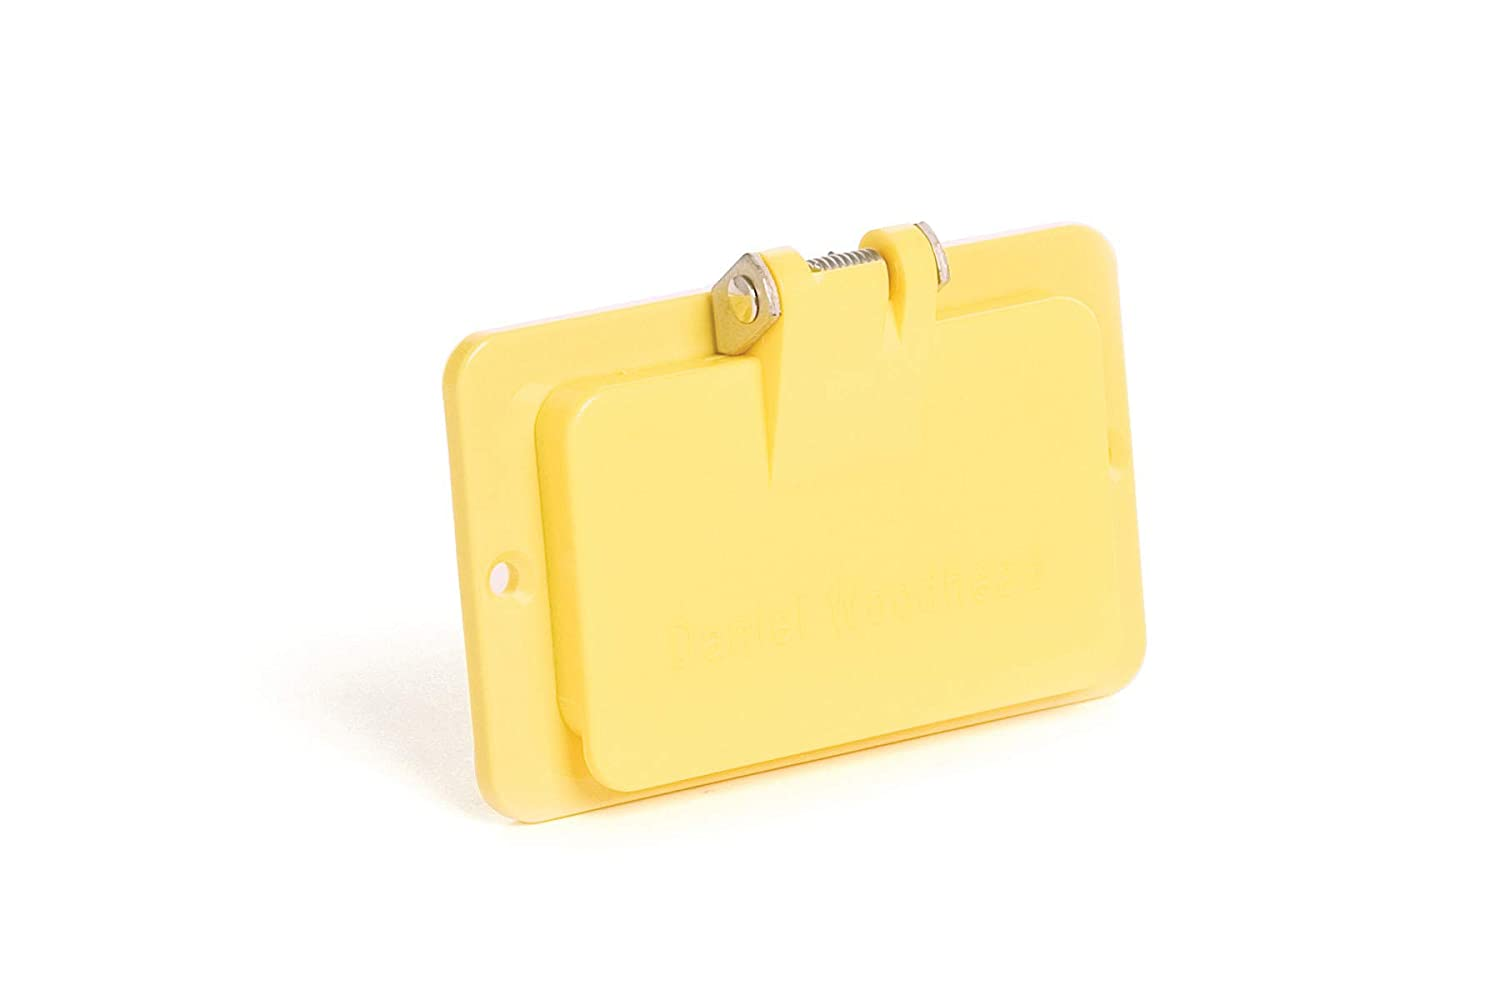 Woodhead 3060 Super-Safeway Outlet Box Coverplate GFCI Opening